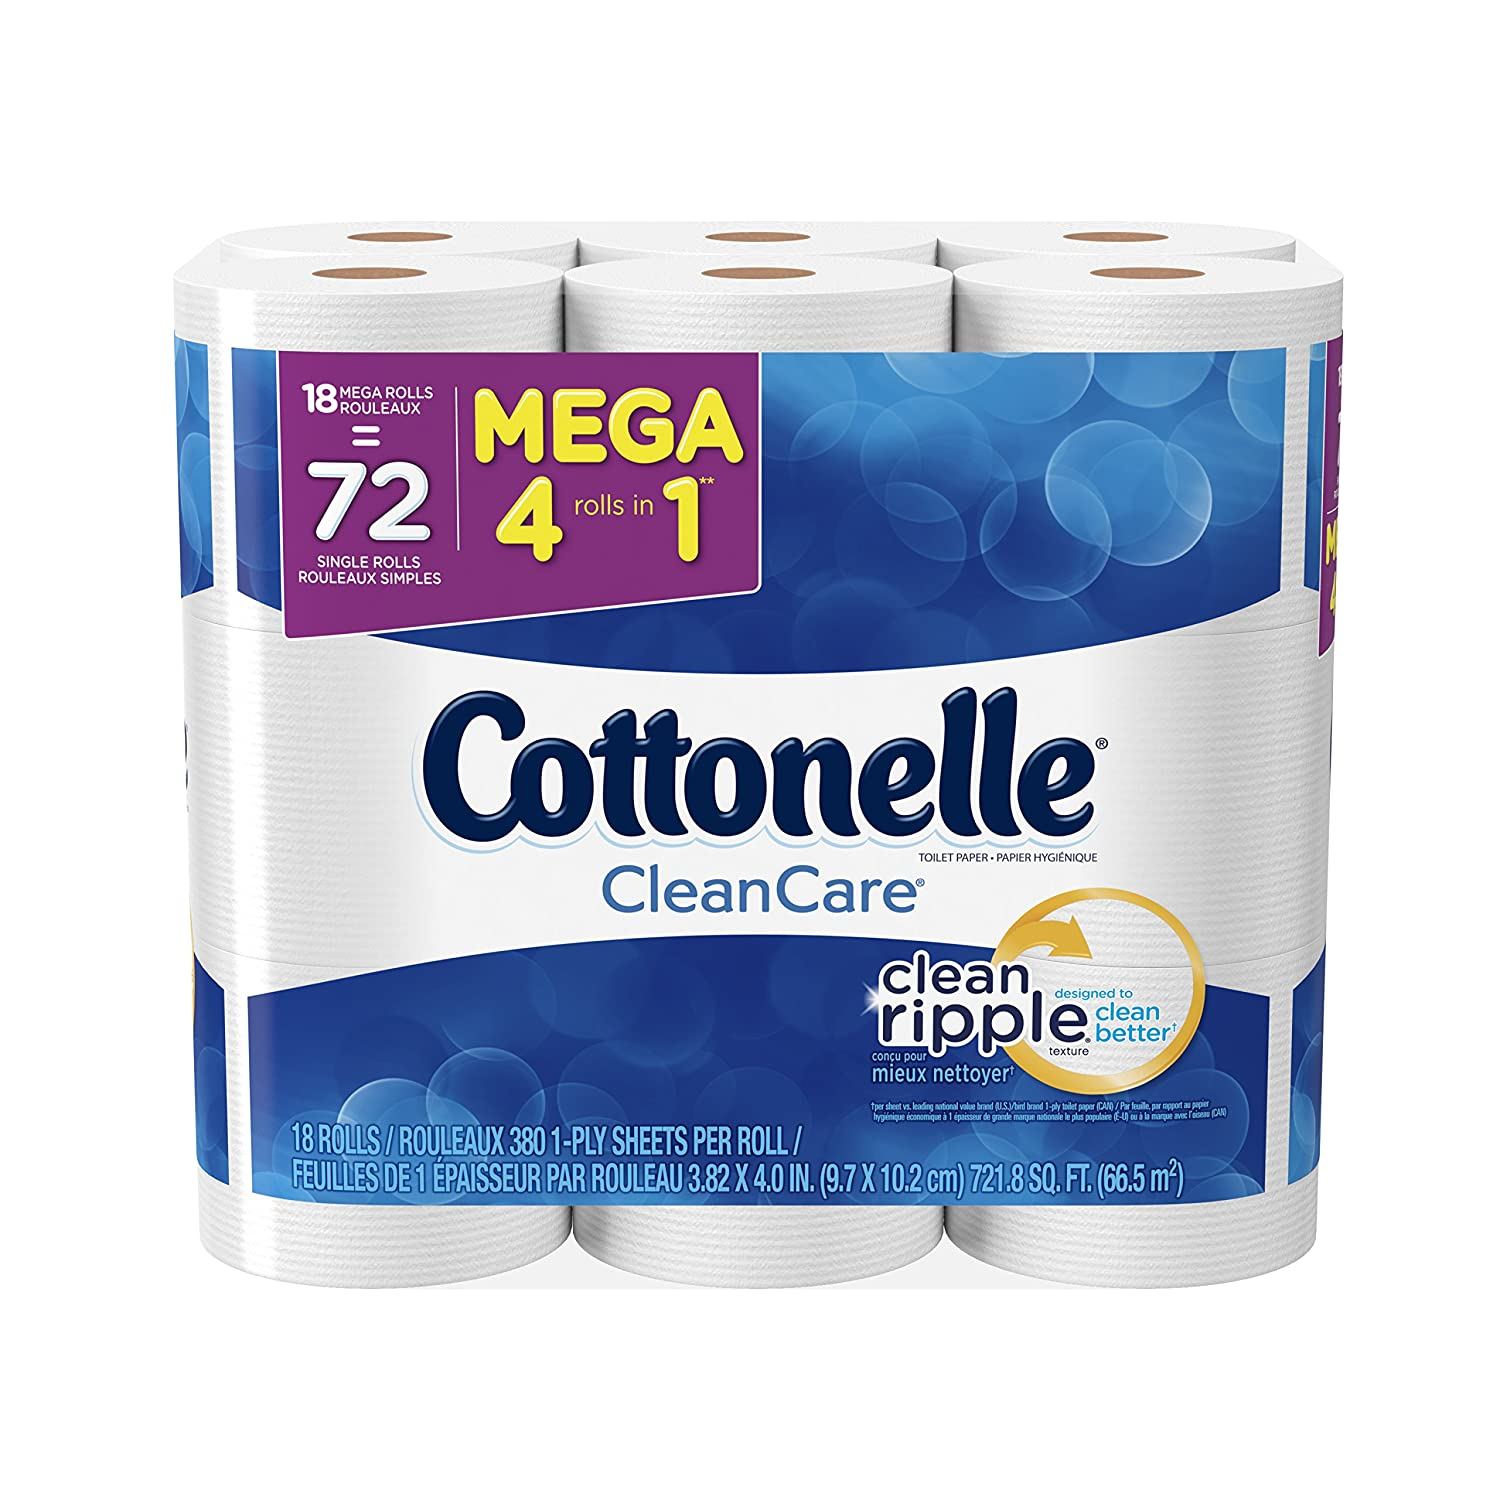 Amazon.com: Cottonelle Clean Care Toilet Paper, Double Roll, 4 ...